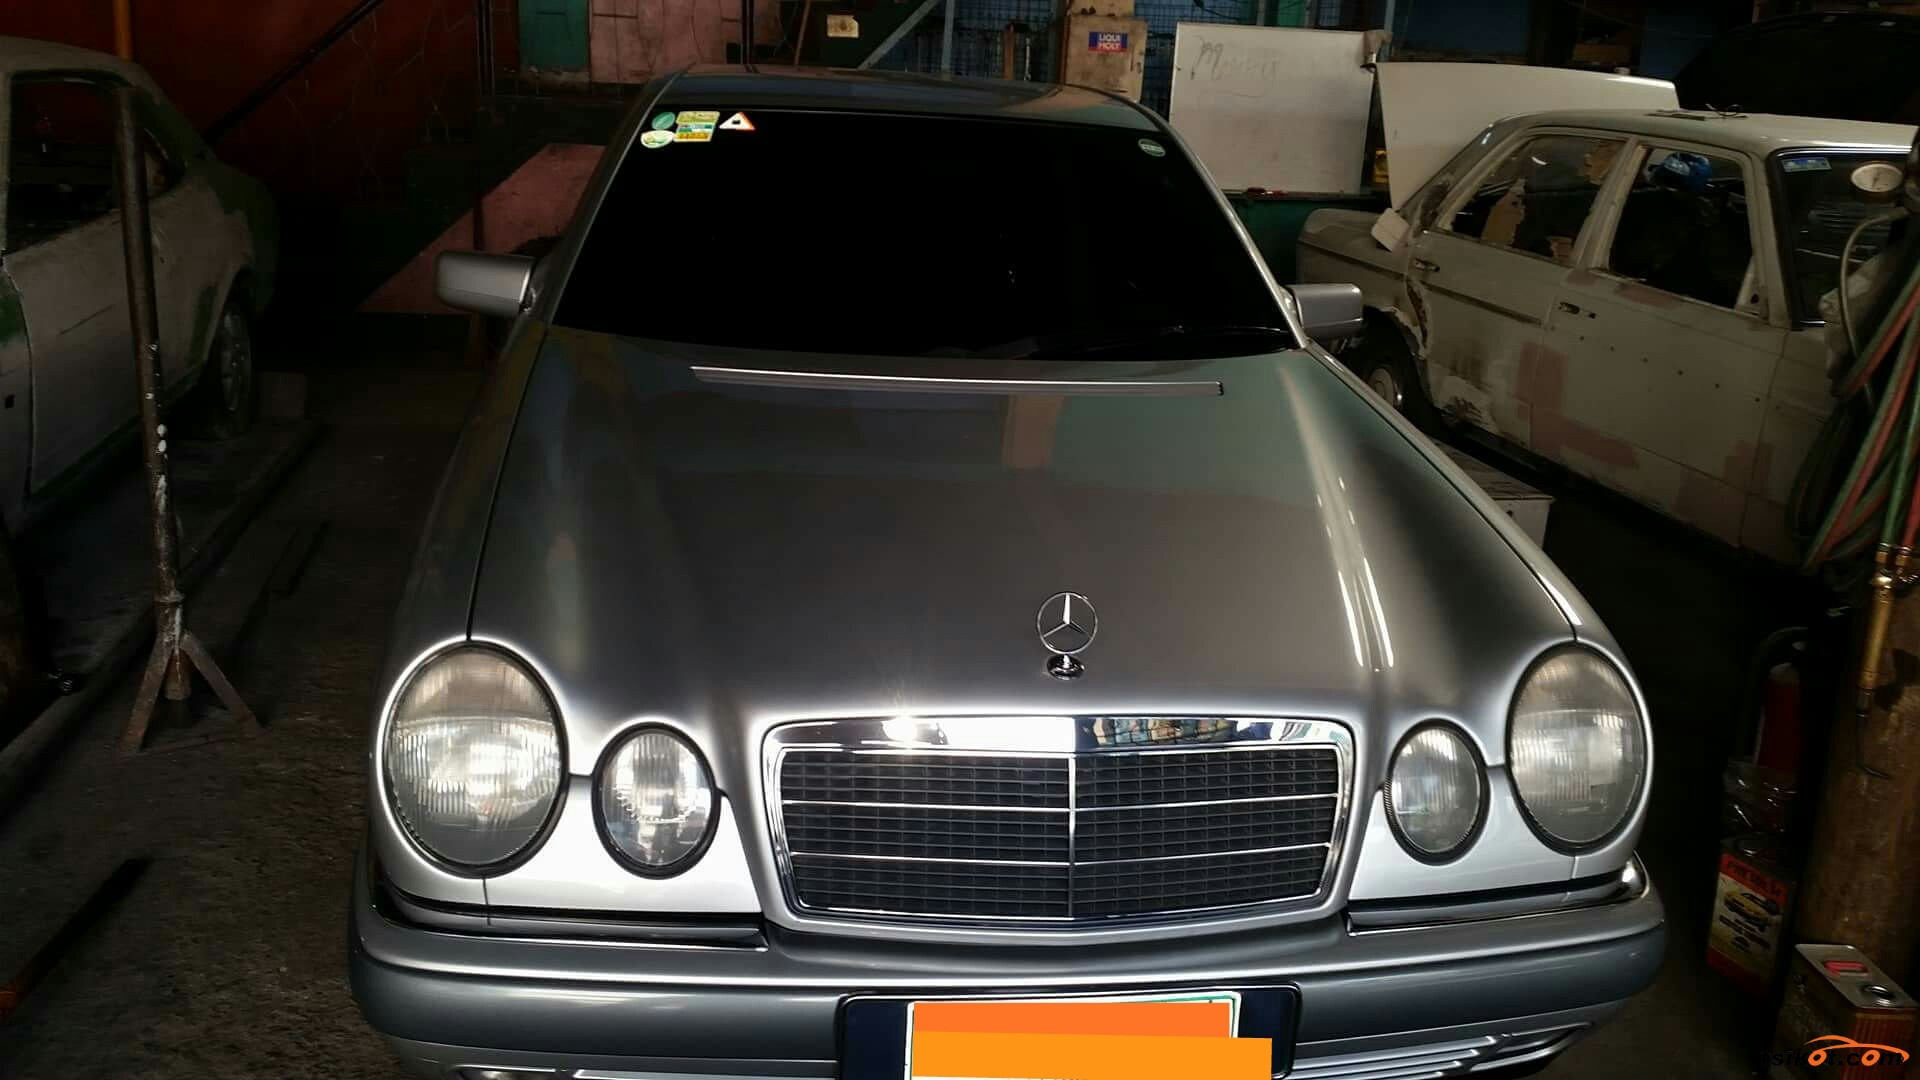 Mercedes benz 240 1998 car for sale metro manila for 240 mercedes benz for sale